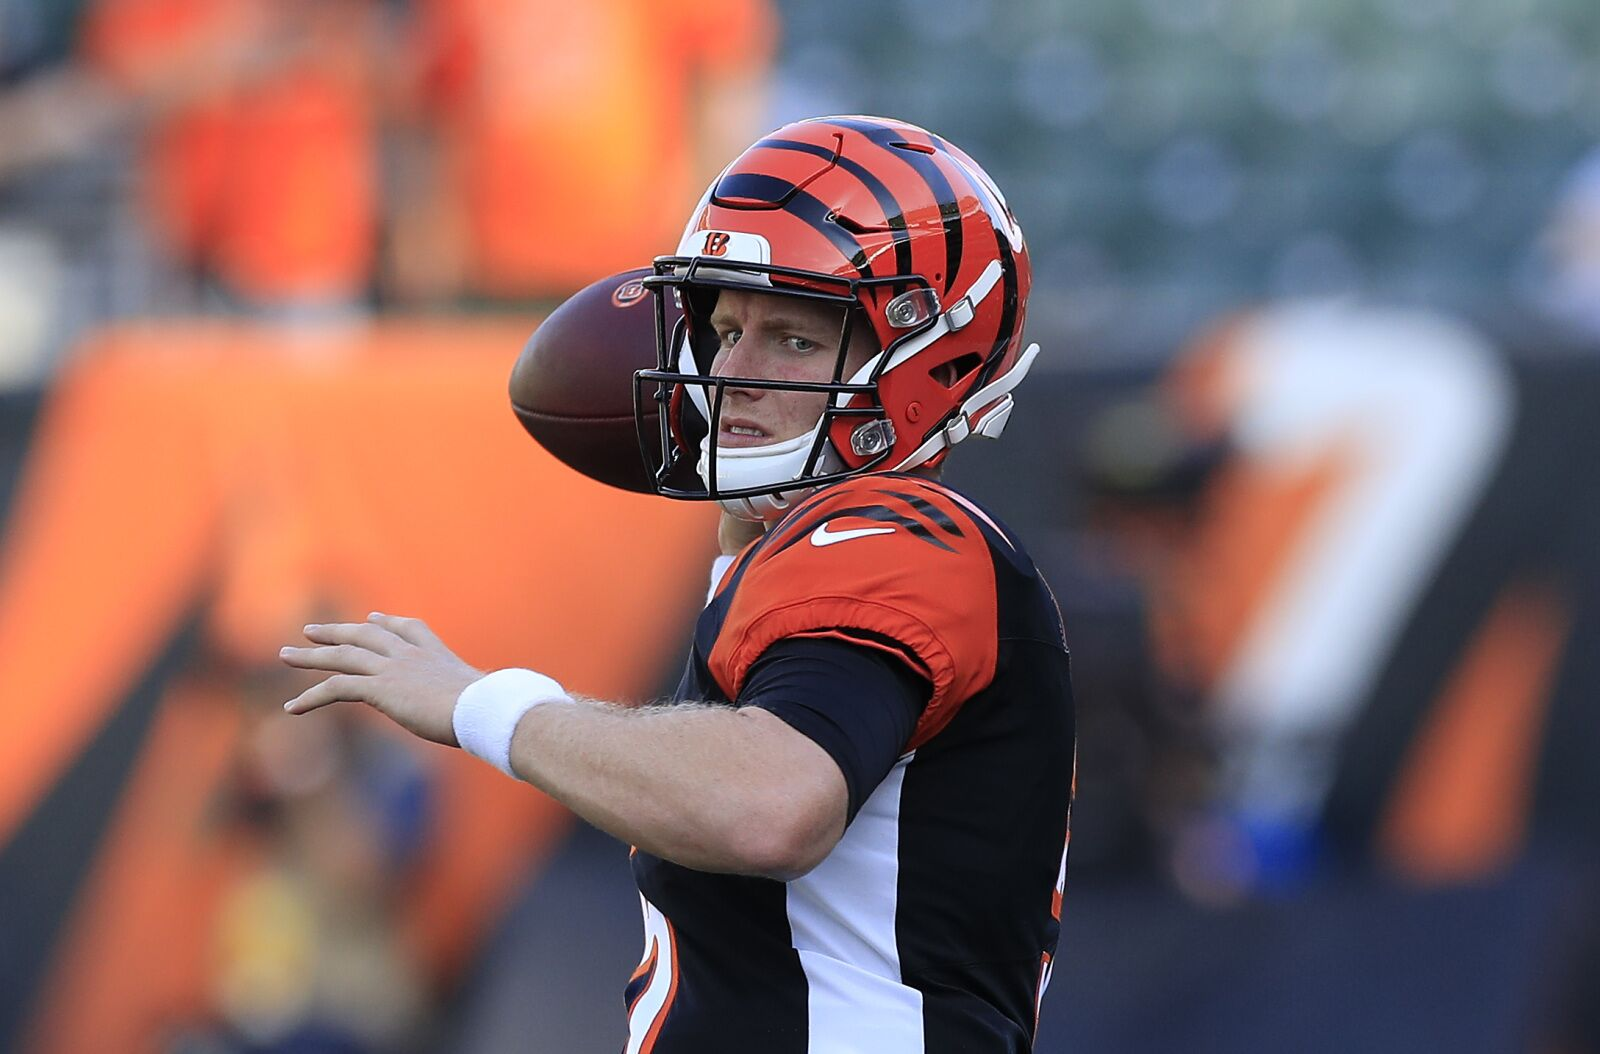 Ryan Finley is not the answer to the Cincinnati Bengals offensive problems